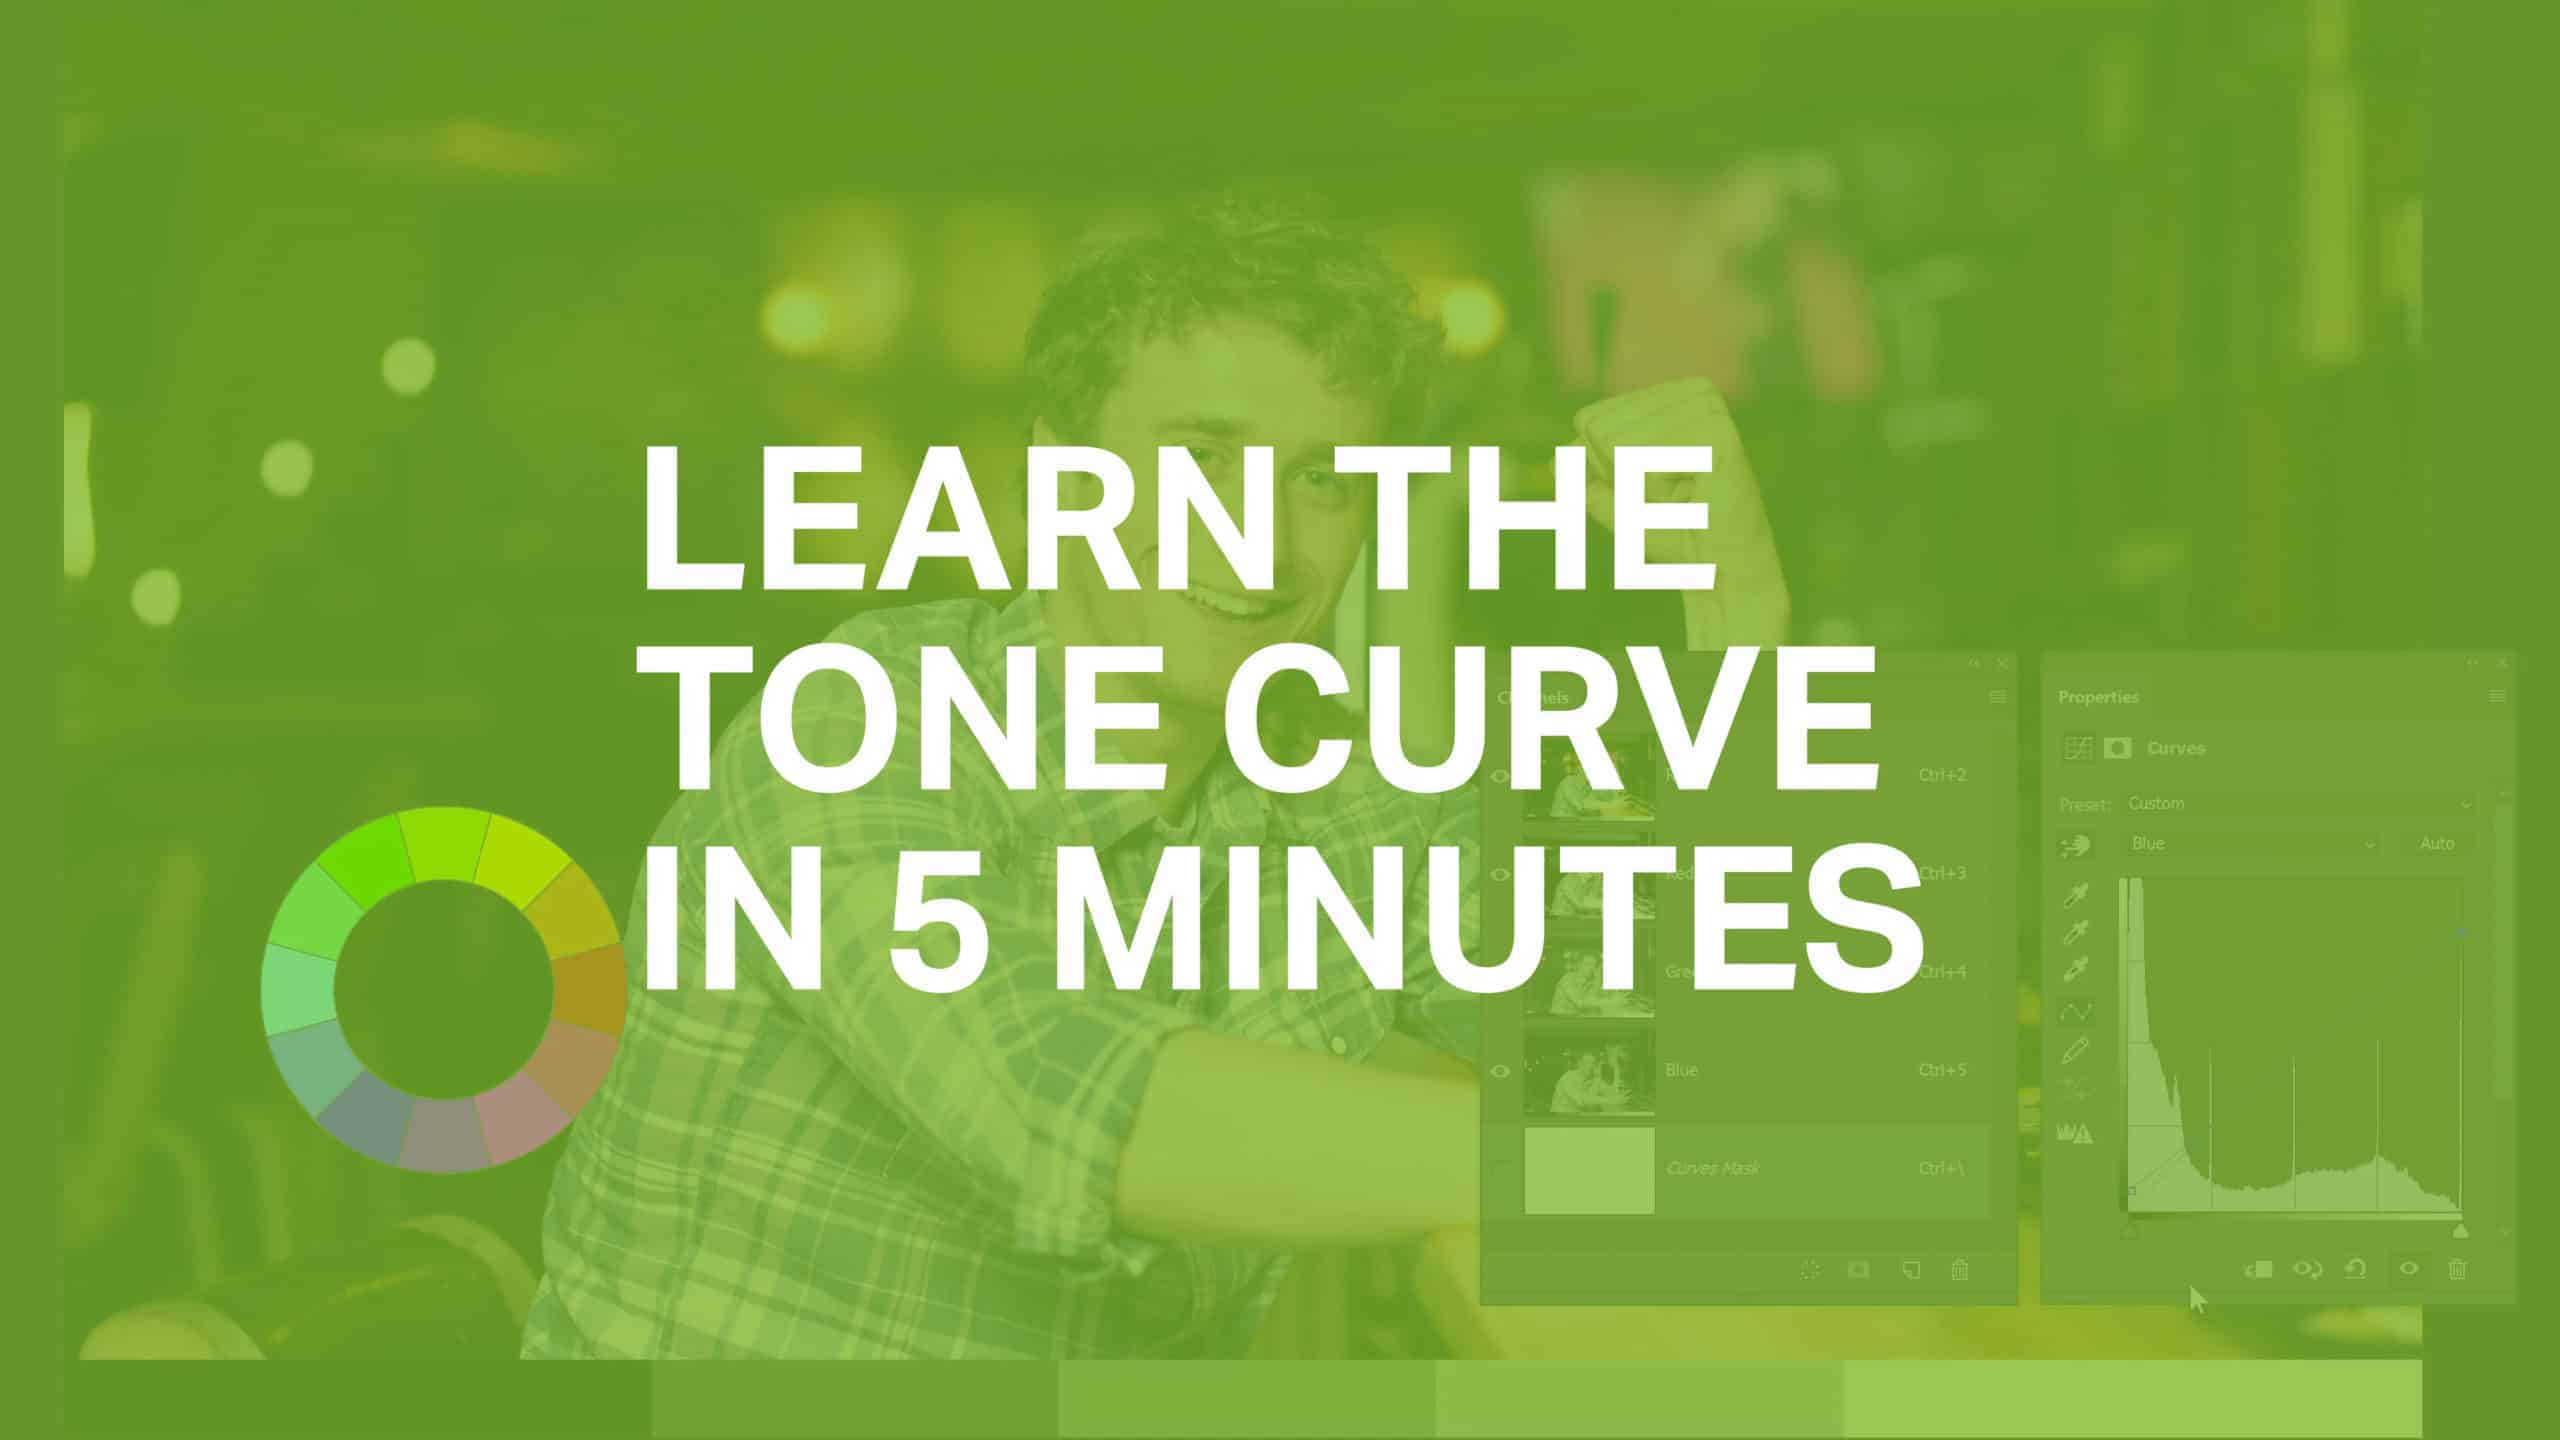 Learn the Tone Curve in 5 Minutes